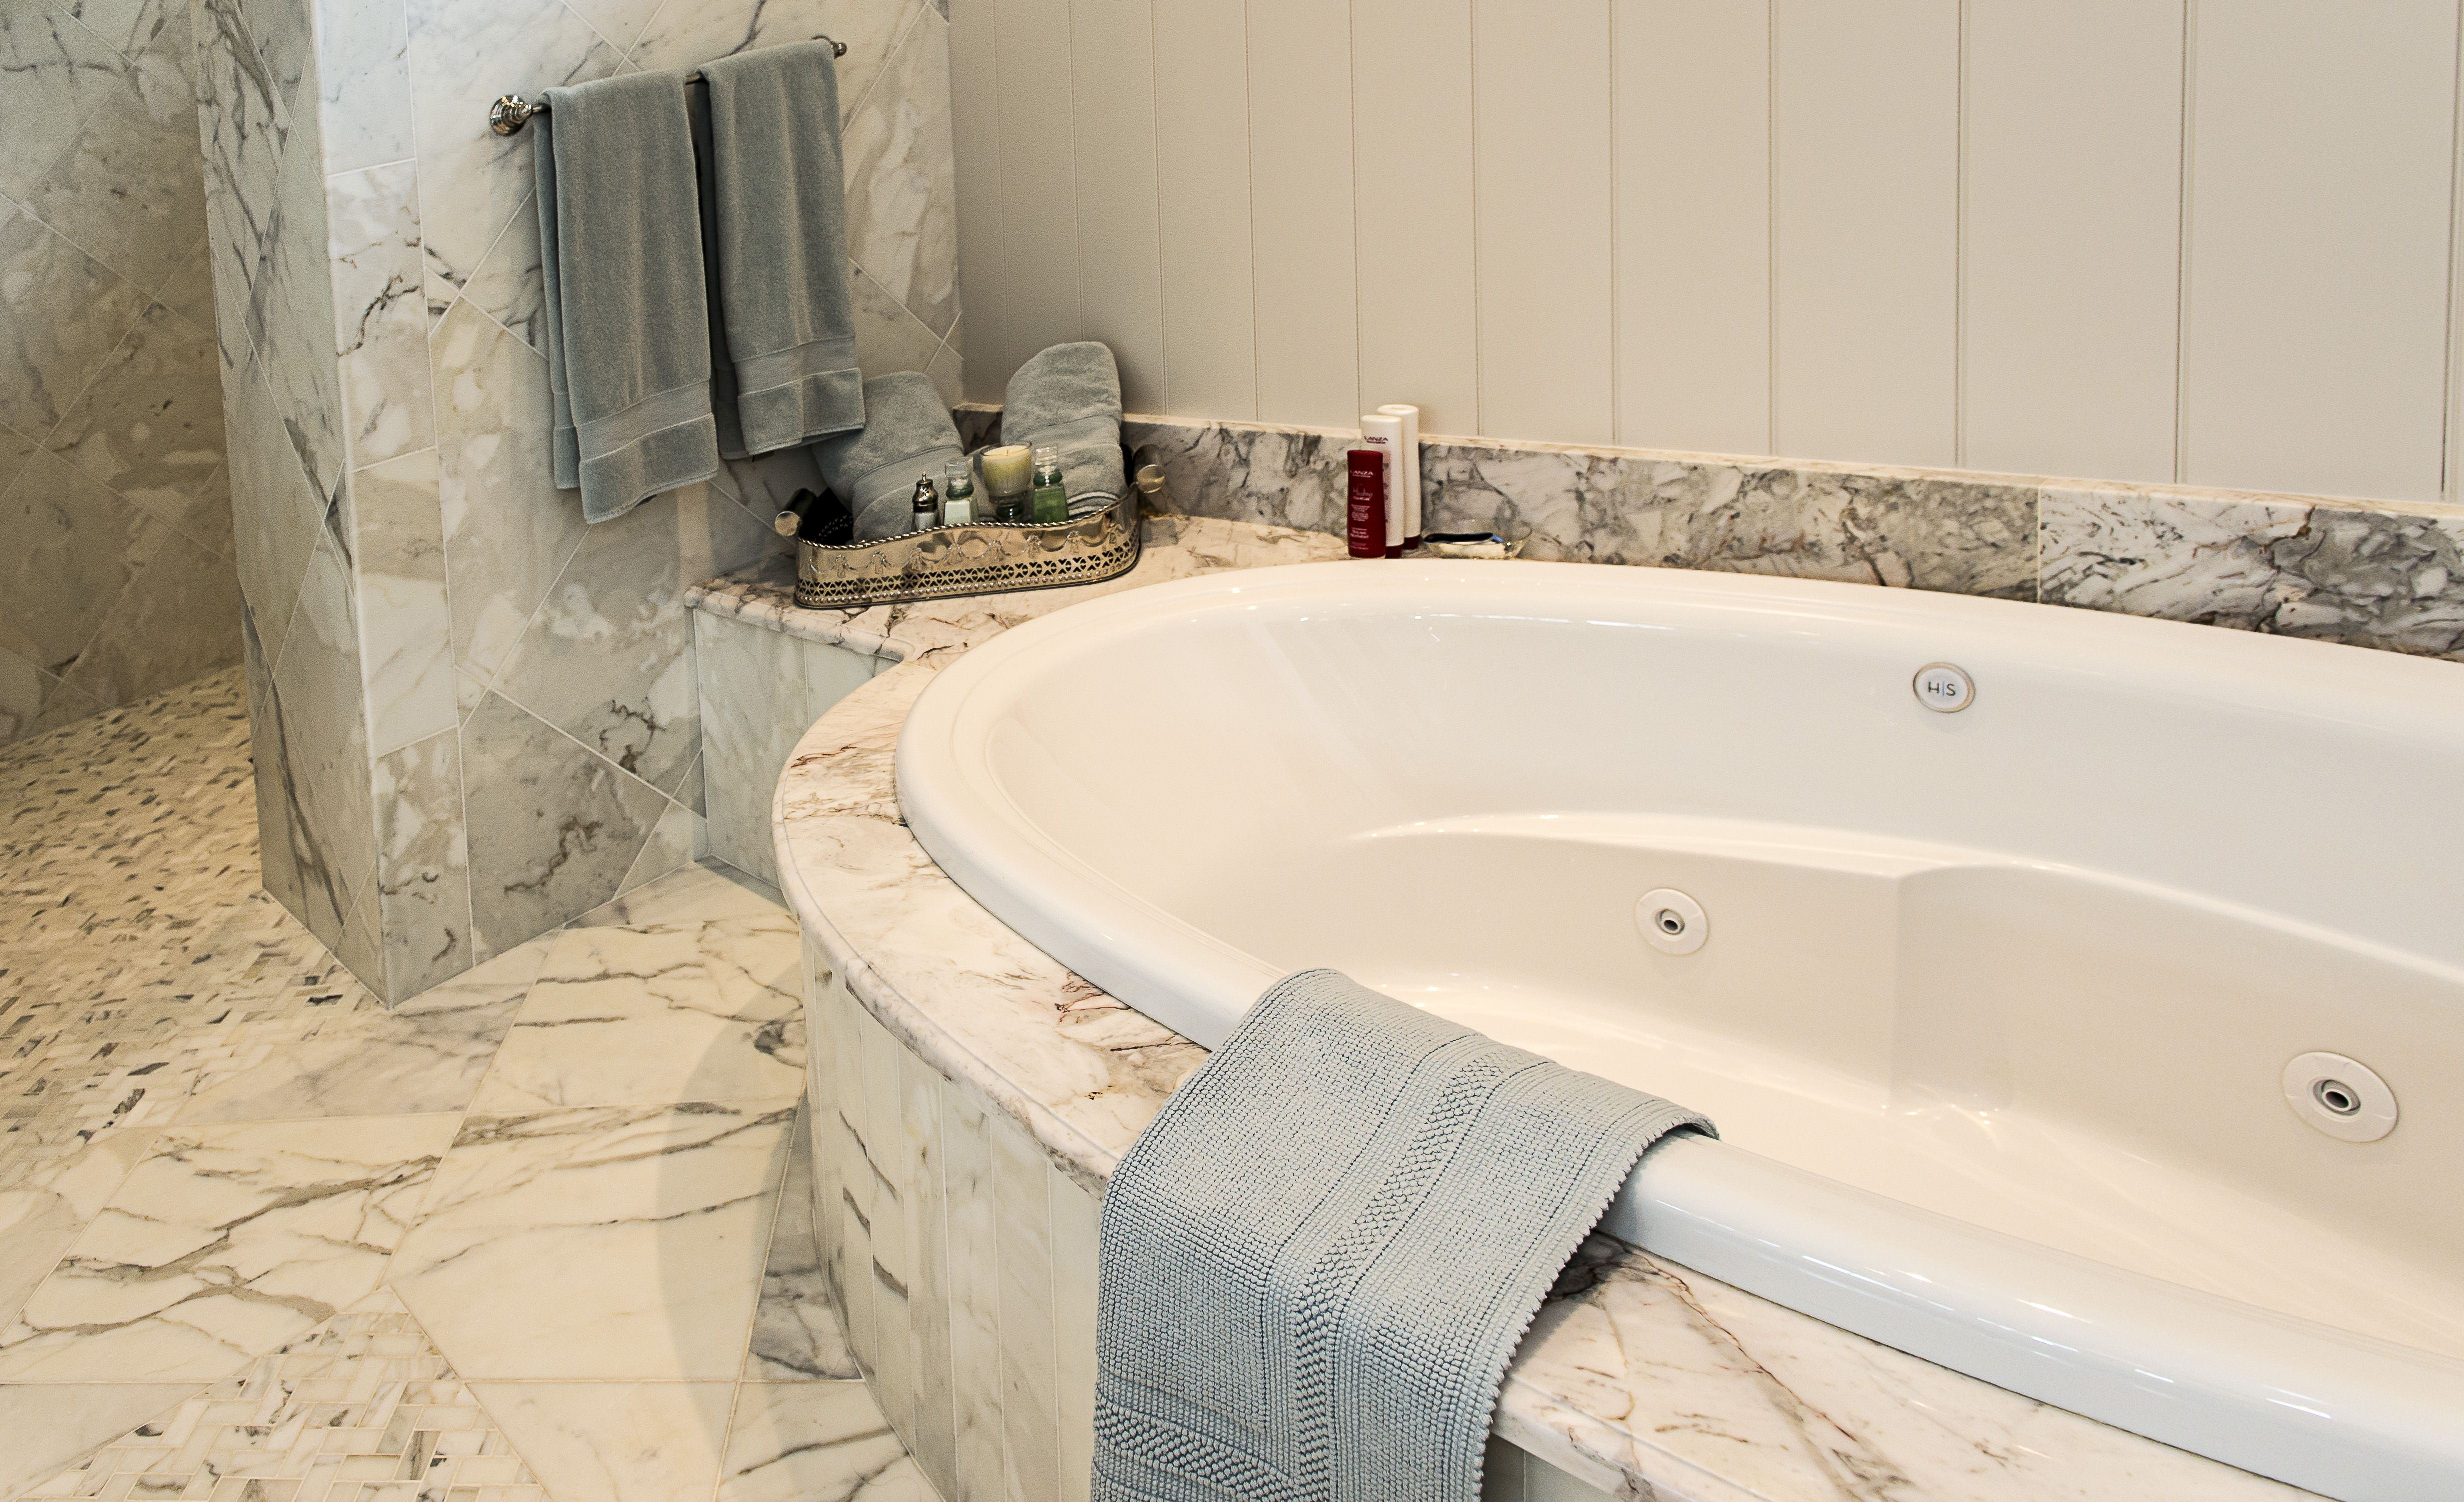 Ah, to sink into this jet tub, with the beautiful Calacatta Gold ...